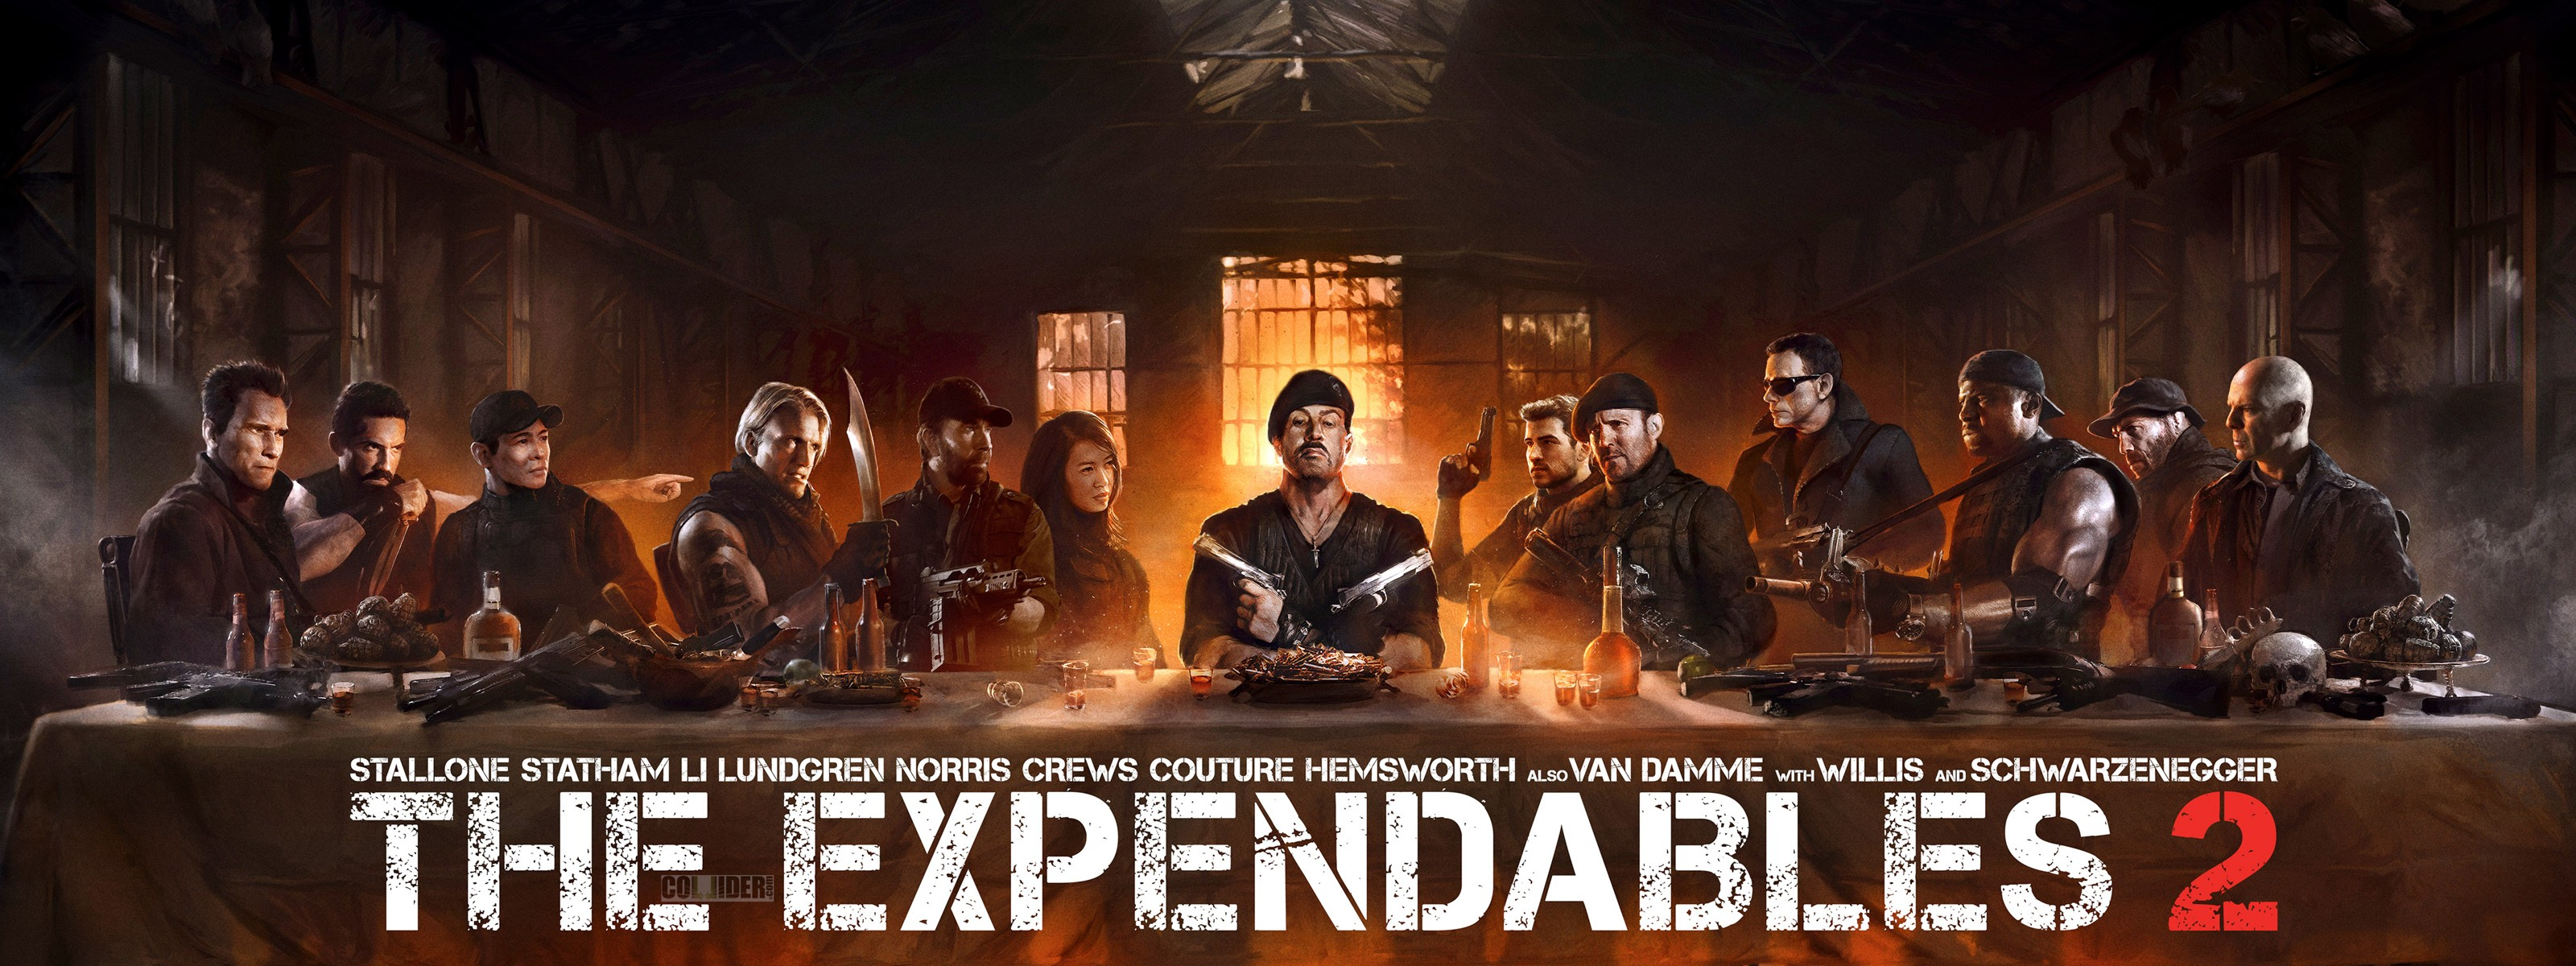 Cute Painting Hd Wallpapers Expendables 2 The Last Supper Wallpapers Hd Wallpapers